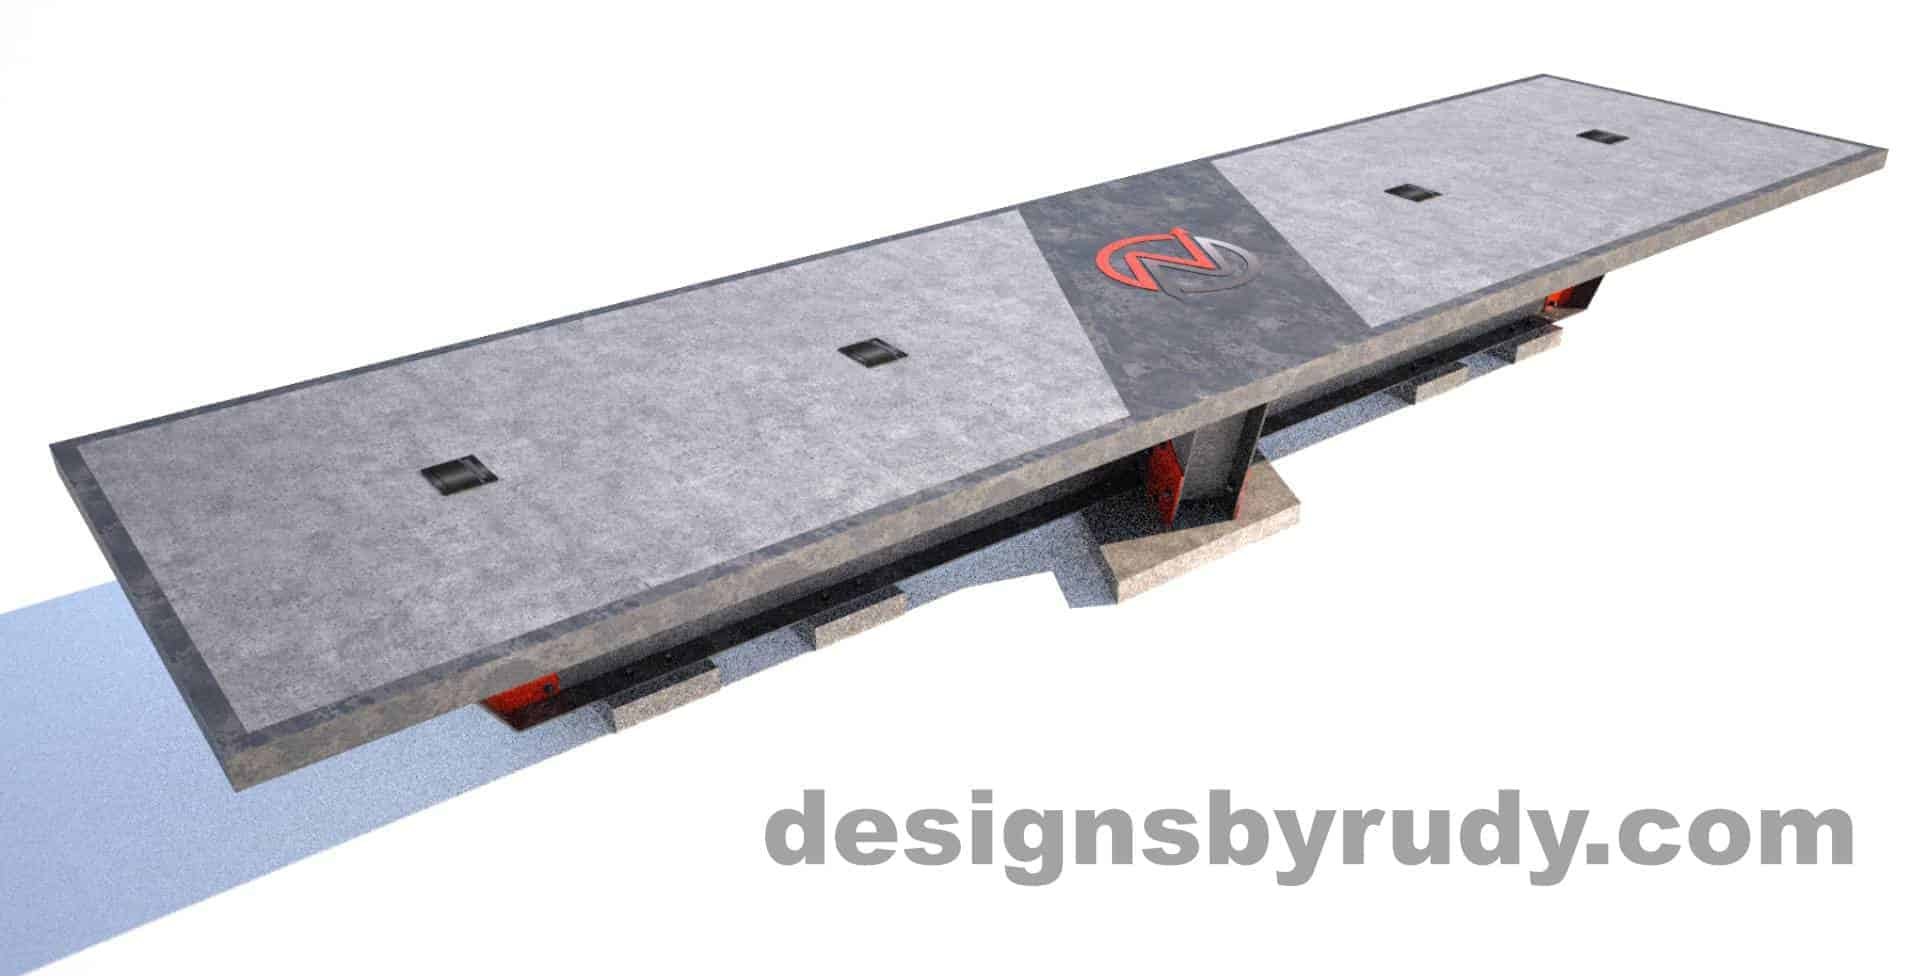 Steel base concrete top conference table design and fabrication by Designs by Rudy (9)